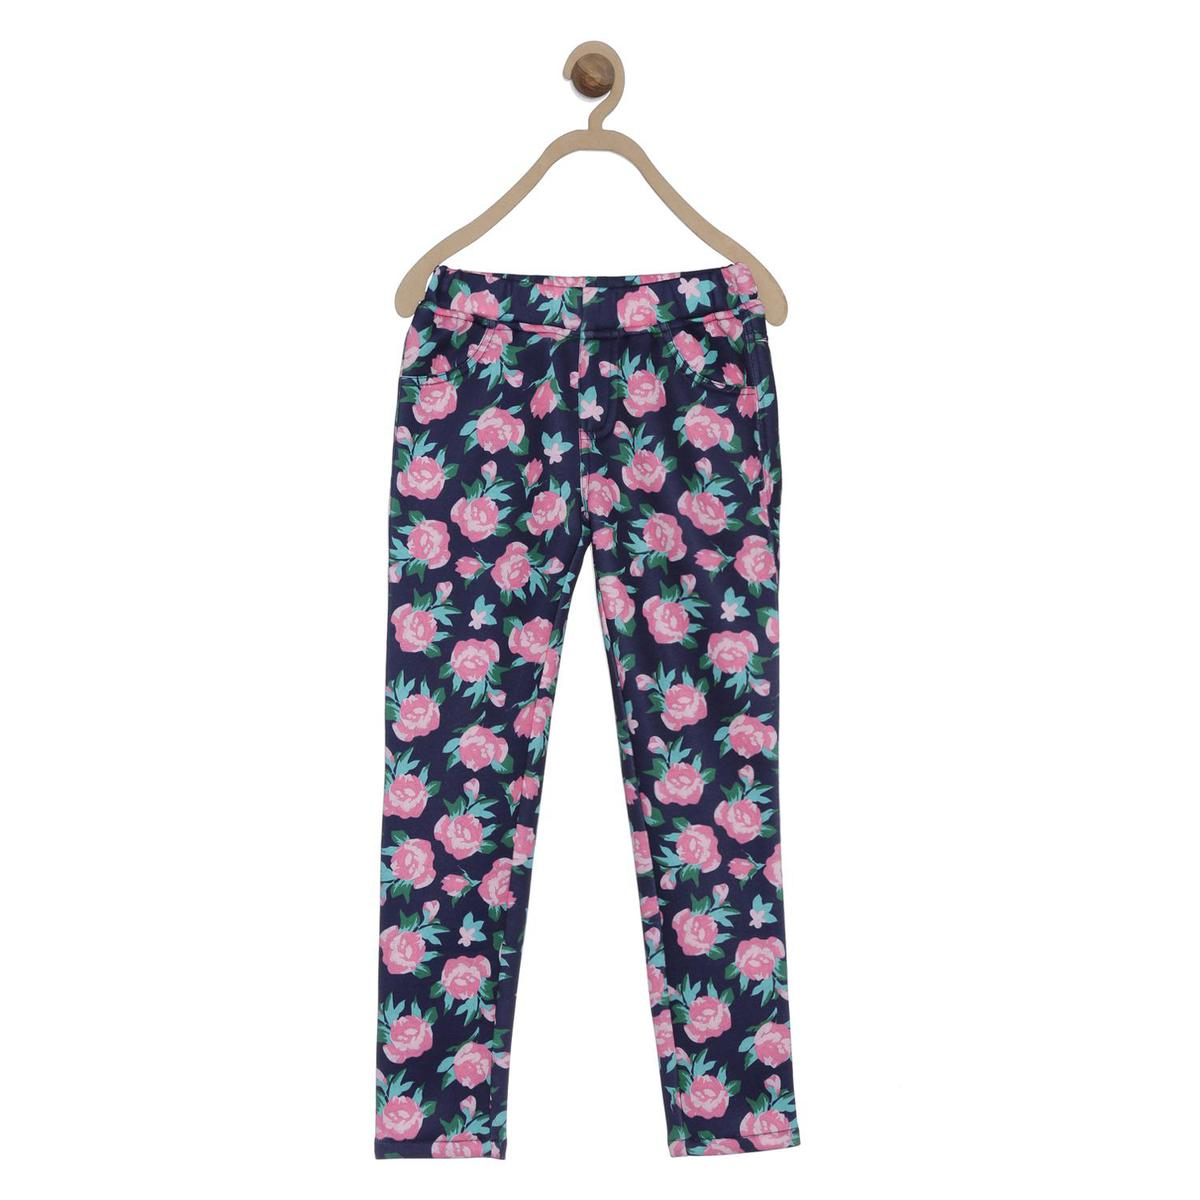 612 League - Blue Colored Printed Jeggings For Girls